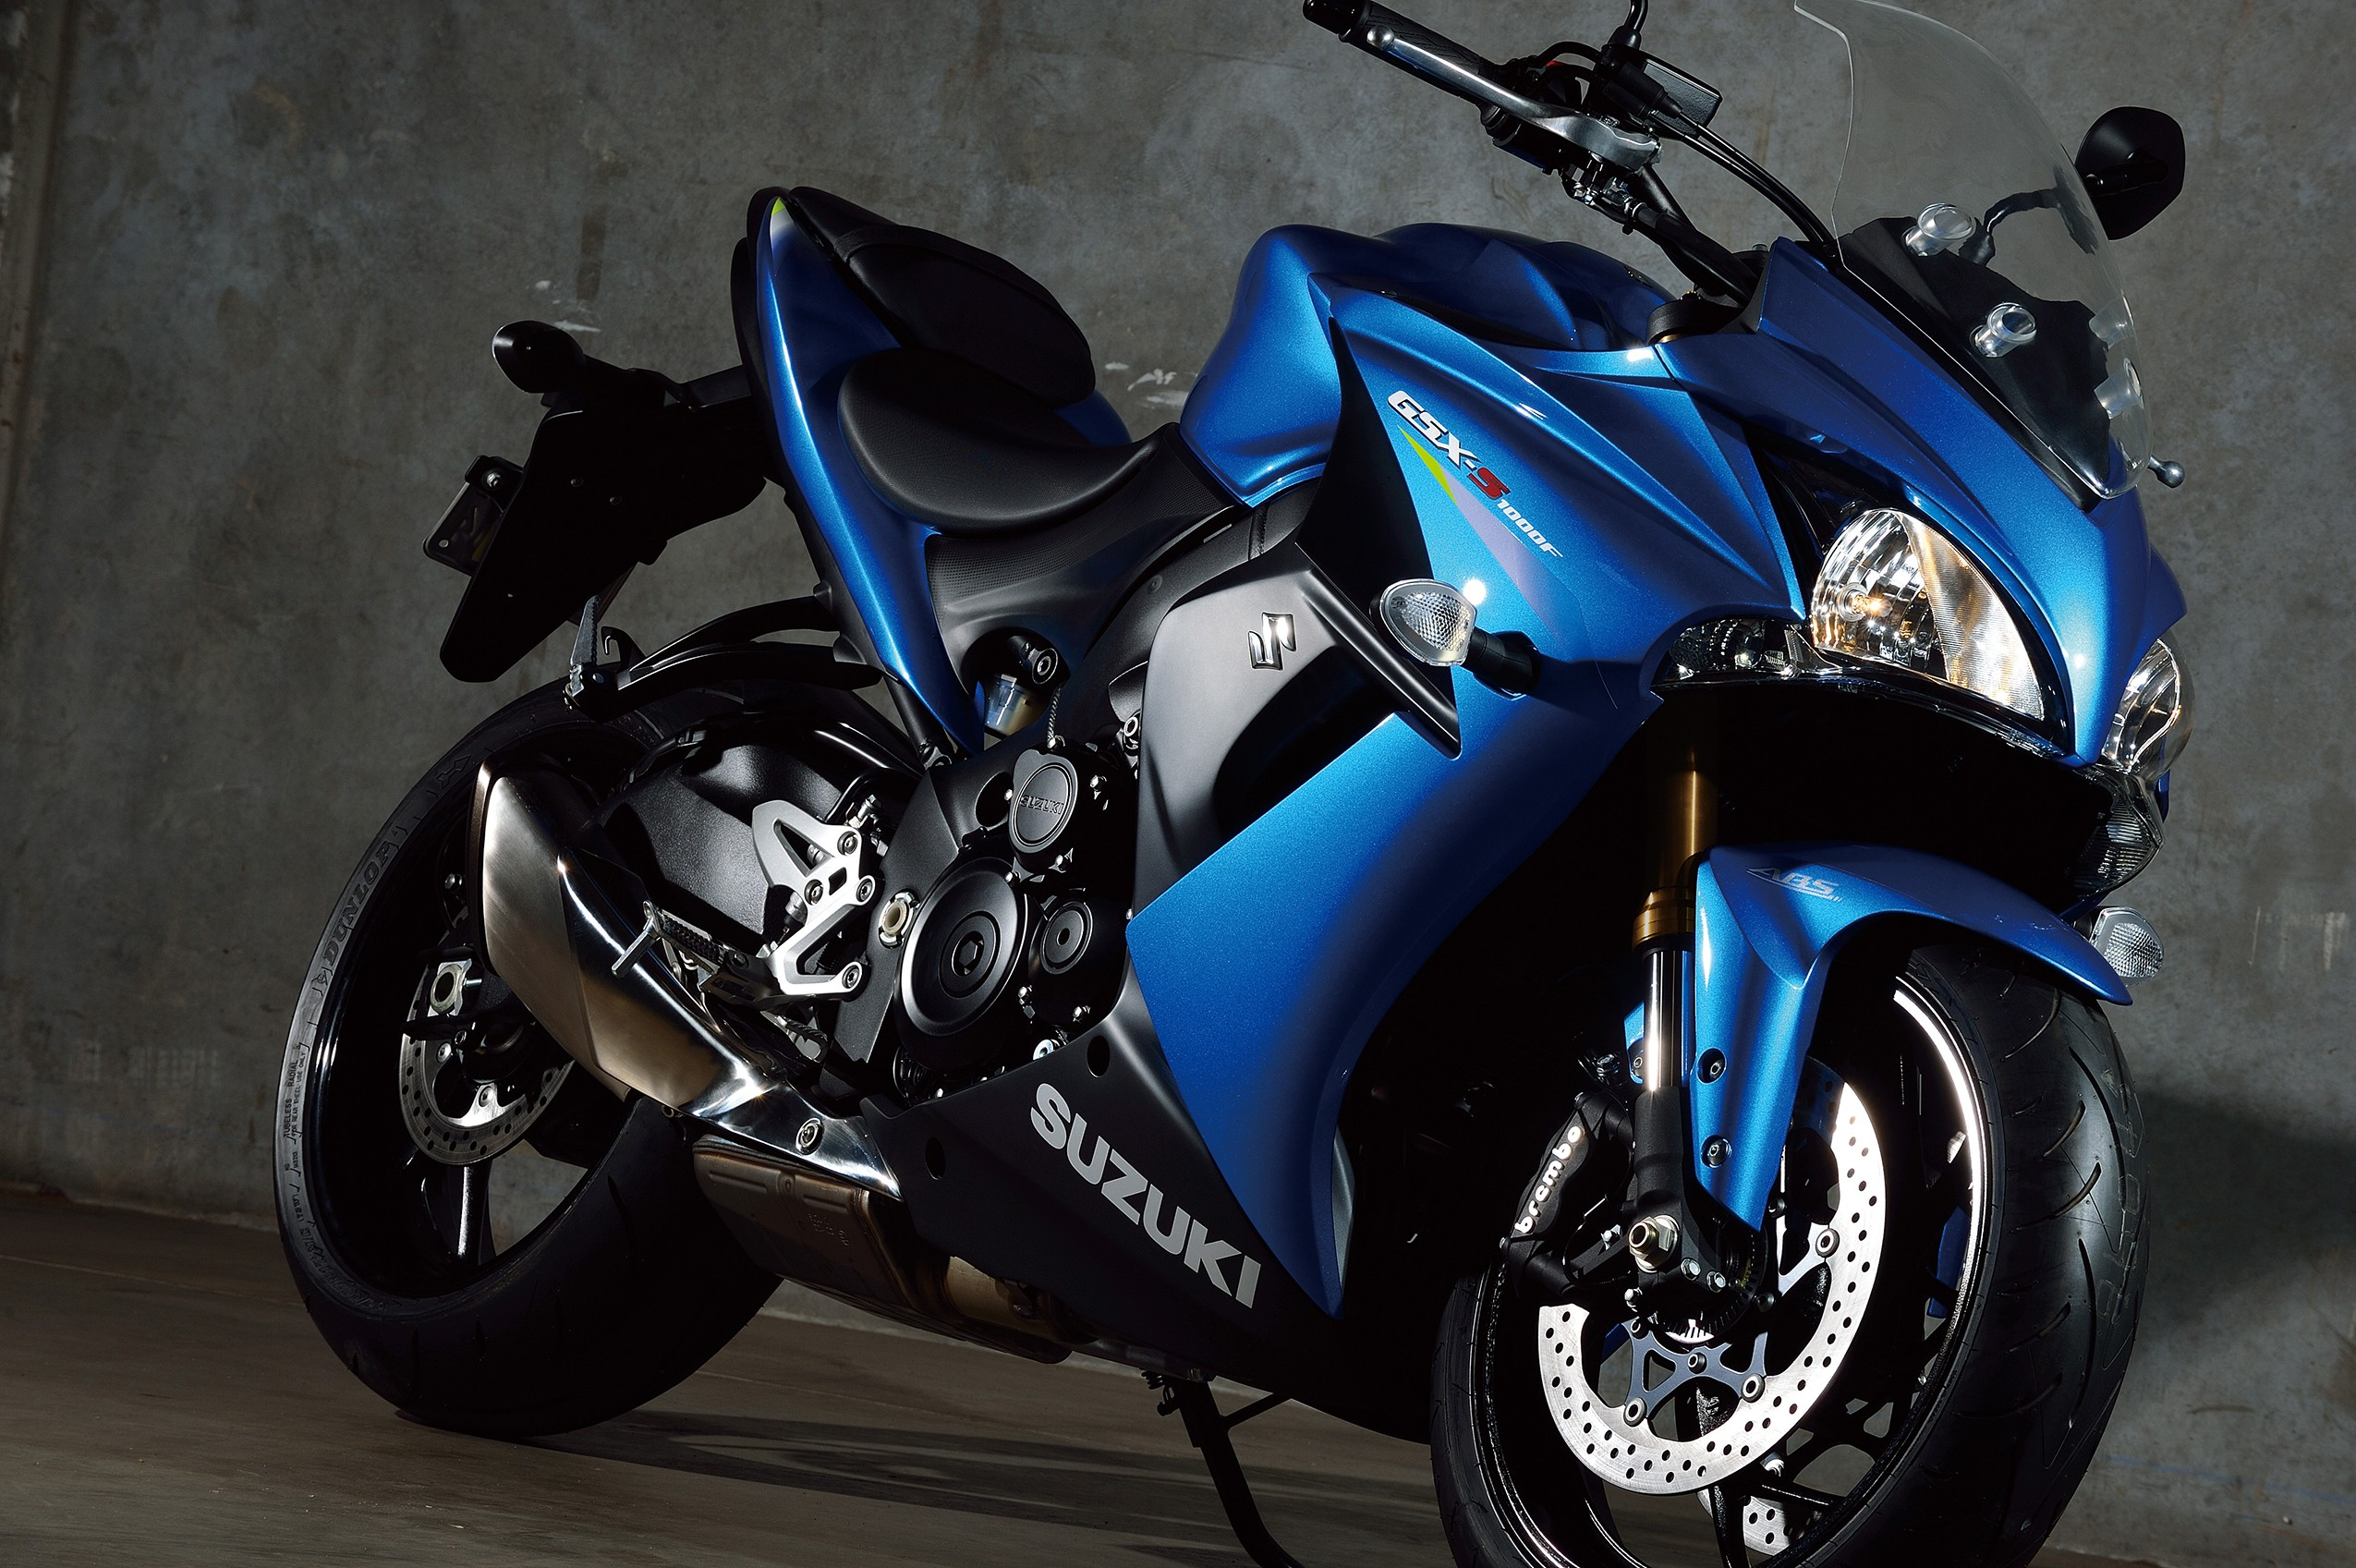 suzuki gsx s1000f abs specs 2016 2017 2018 autoevolution. Black Bedroom Furniture Sets. Home Design Ideas